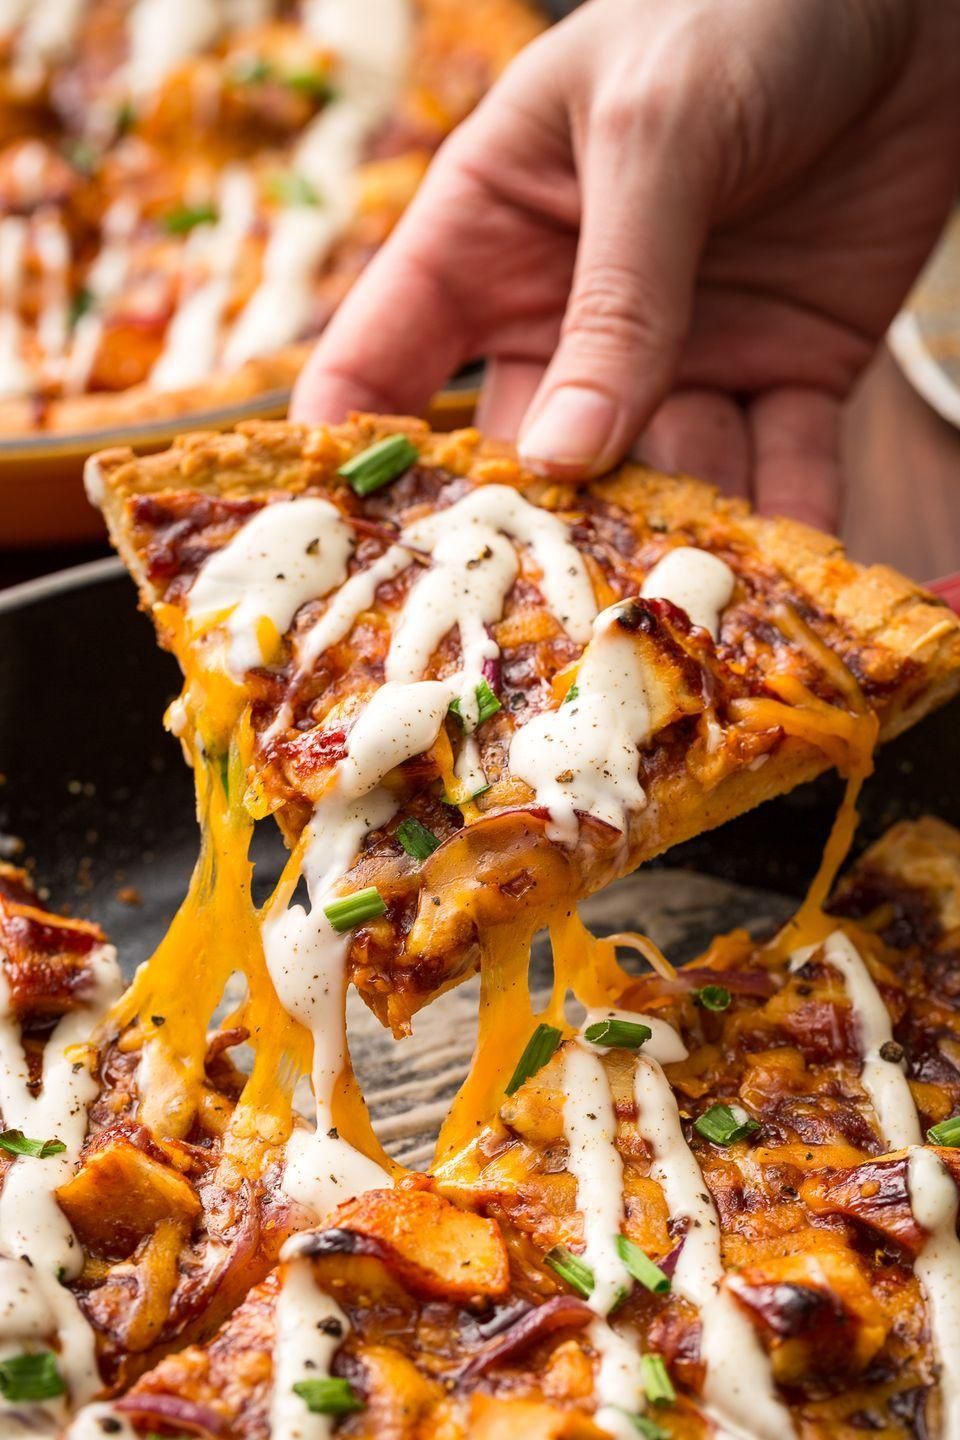 "<p>Recreate the CPK fave with the skillet version of this insanely delicious homemade pie. </p><p>Get the recipe from <a href=""/cooking/recipe-ideas/recipes/a46838/bbq-chicken-skillet-pizza-recipe/"" data-ylk=""slk:Delish"" class=""link rapid-noclick-resp"">Delish</a>.</p>"